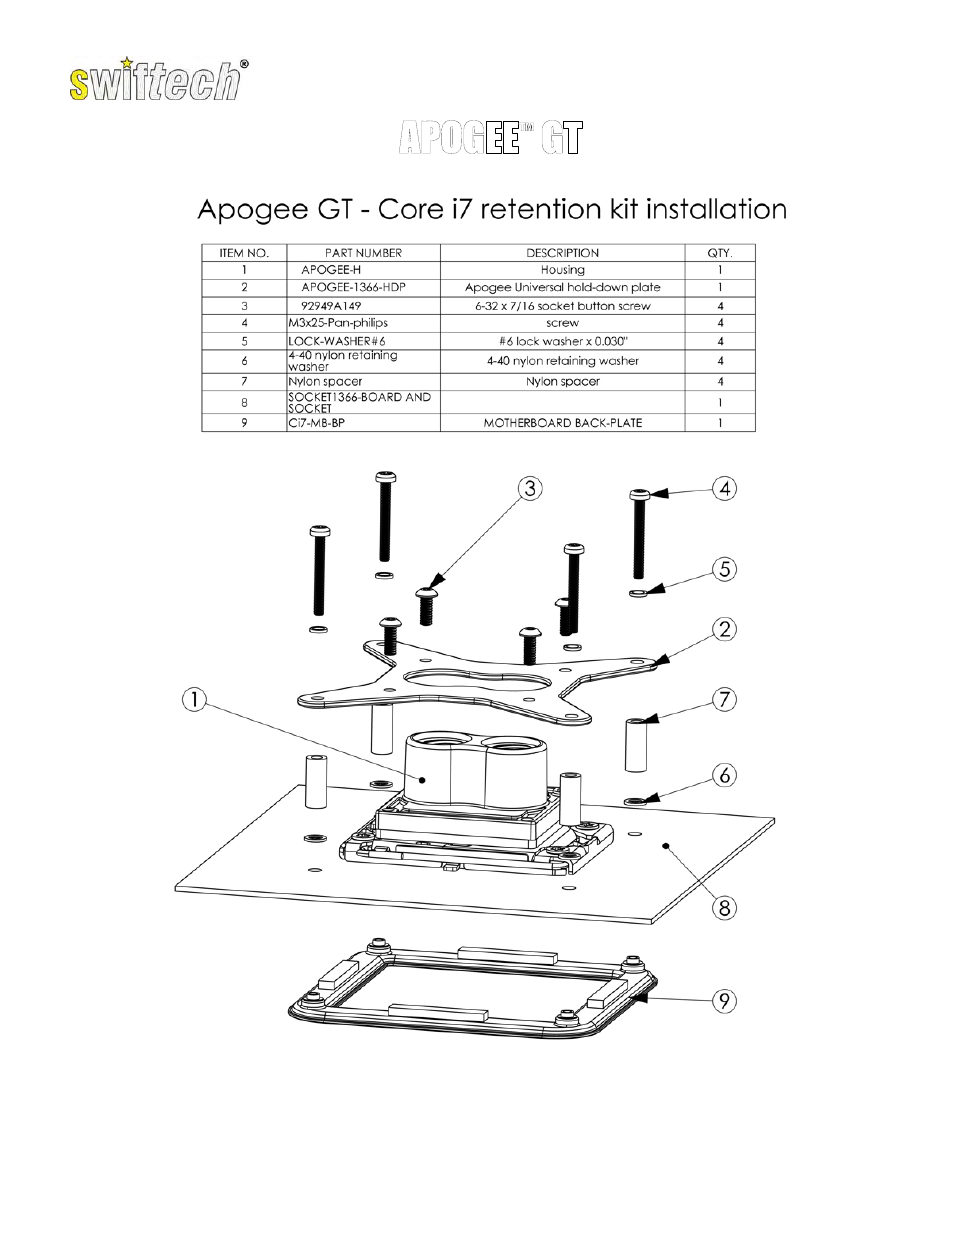 Swiftech APOGEE GT CI7 KIT User Manual | 2 pages